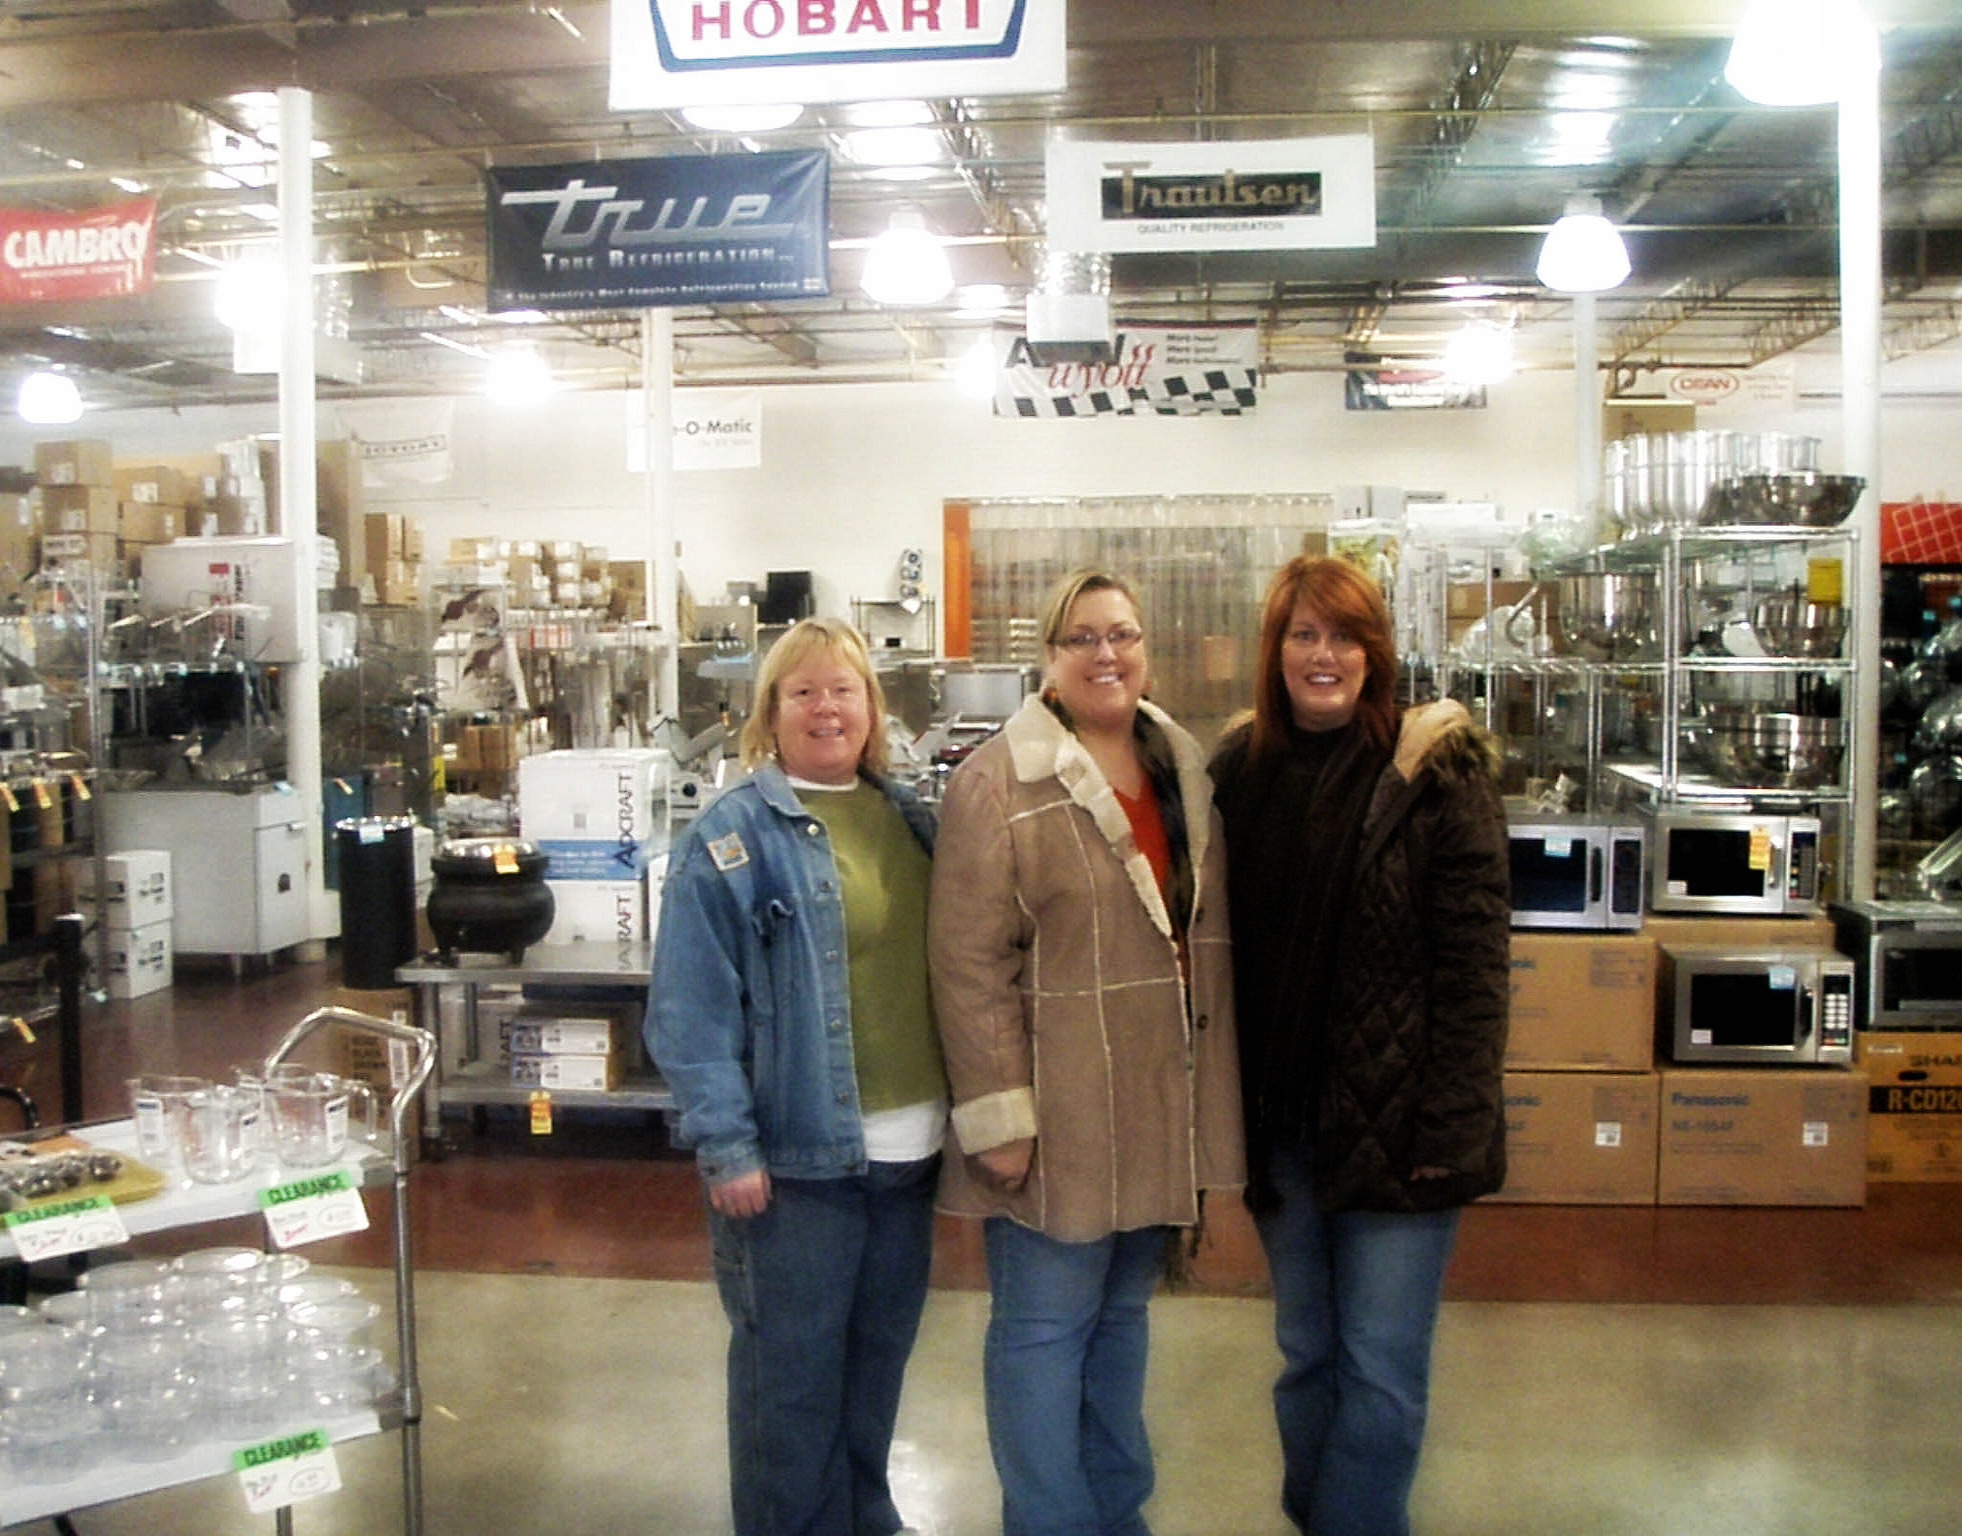 Marvelous Kitchen Supply Store Tulsa #2: So Today, Lorelei Called And Woke Me From My Deep Benadryl Slumber To Ask Me To Meet Them To Go Shopping At My Local Kitchen Supply Store.